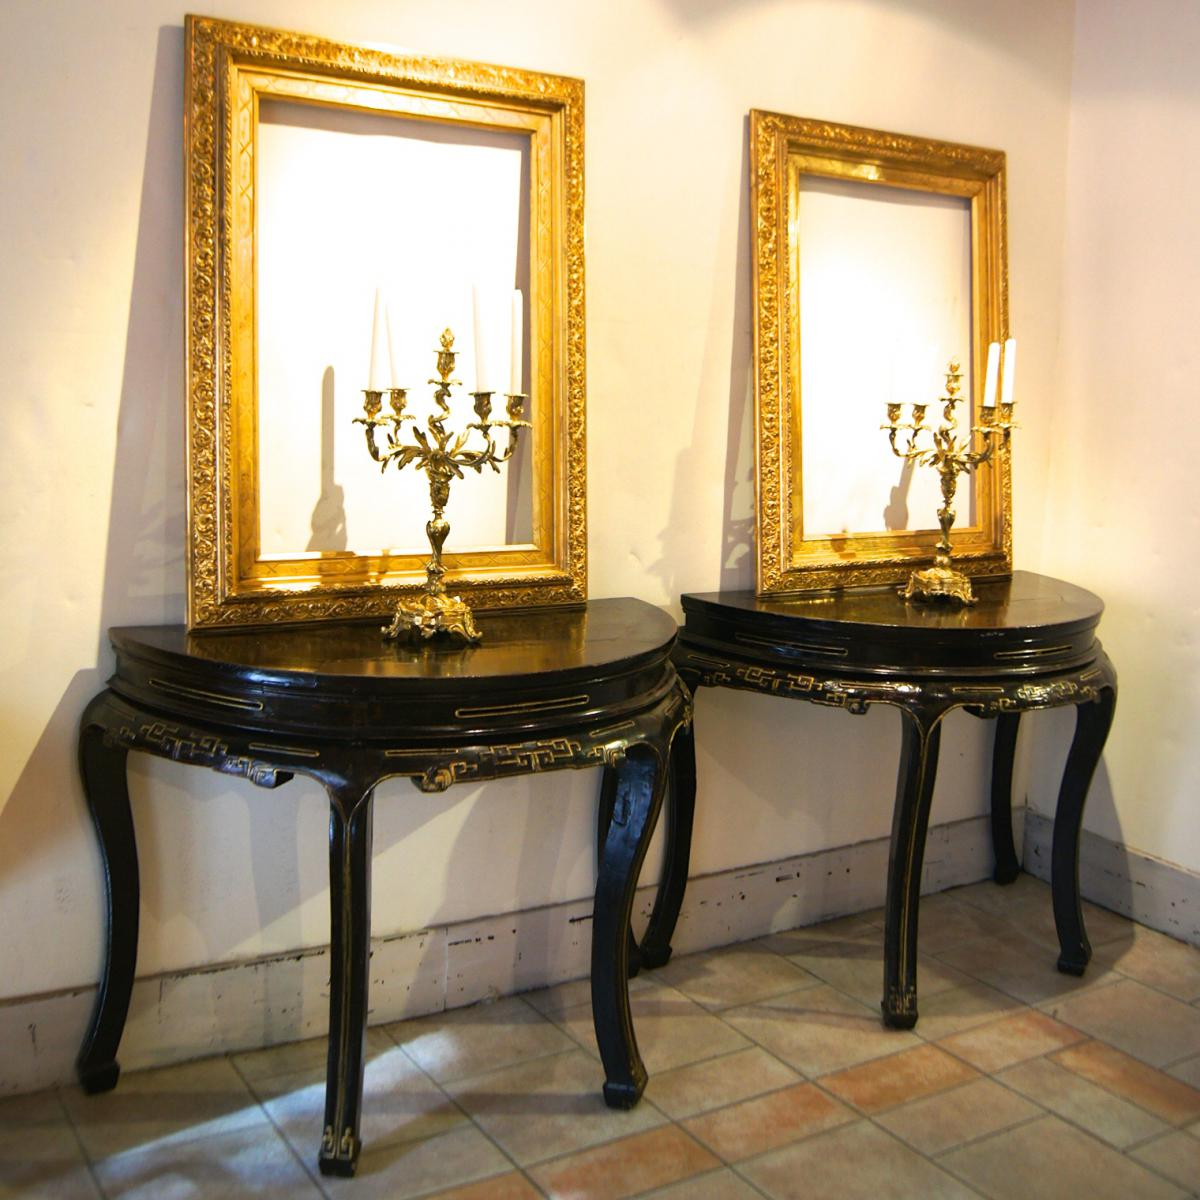 paire console 4 pieds laque noire r hauts dor s table de milieu consoles anciennes. Black Bedroom Furniture Sets. Home Design Ideas